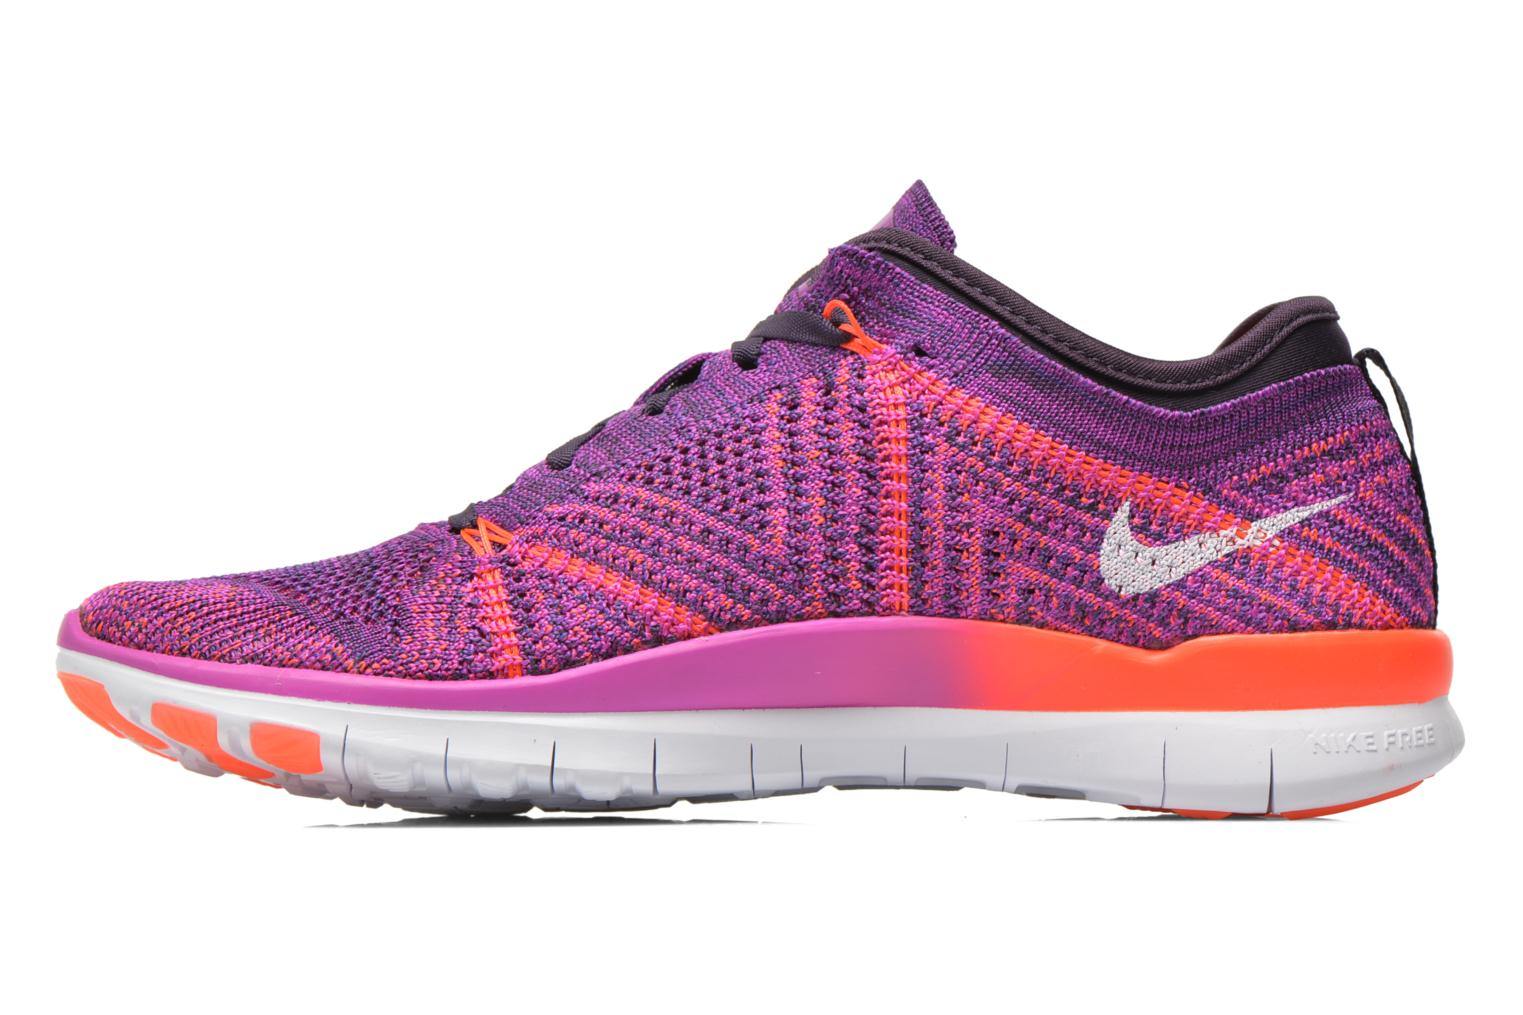 Chaussures de sport Nike Wmns Nike Free Tr Flyknit Violet vue face